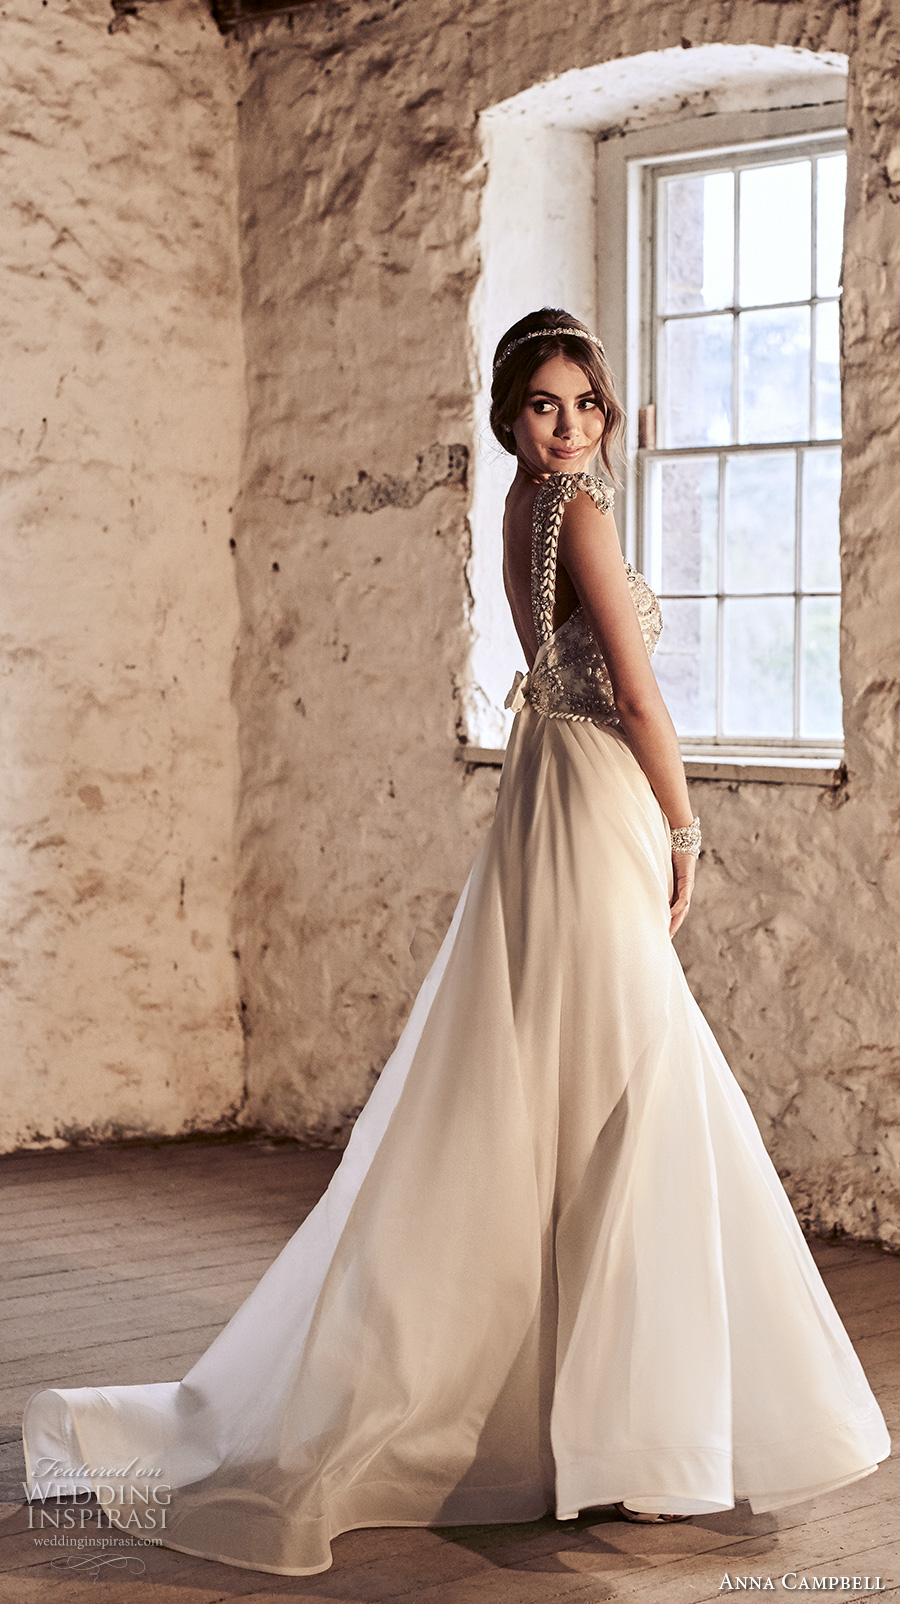 anna campbell 2018 bridal cap sleeves scoop neckline heavily beaded embellished bodice romantic a line wedding dress open scoop back chapel train (7) sdv